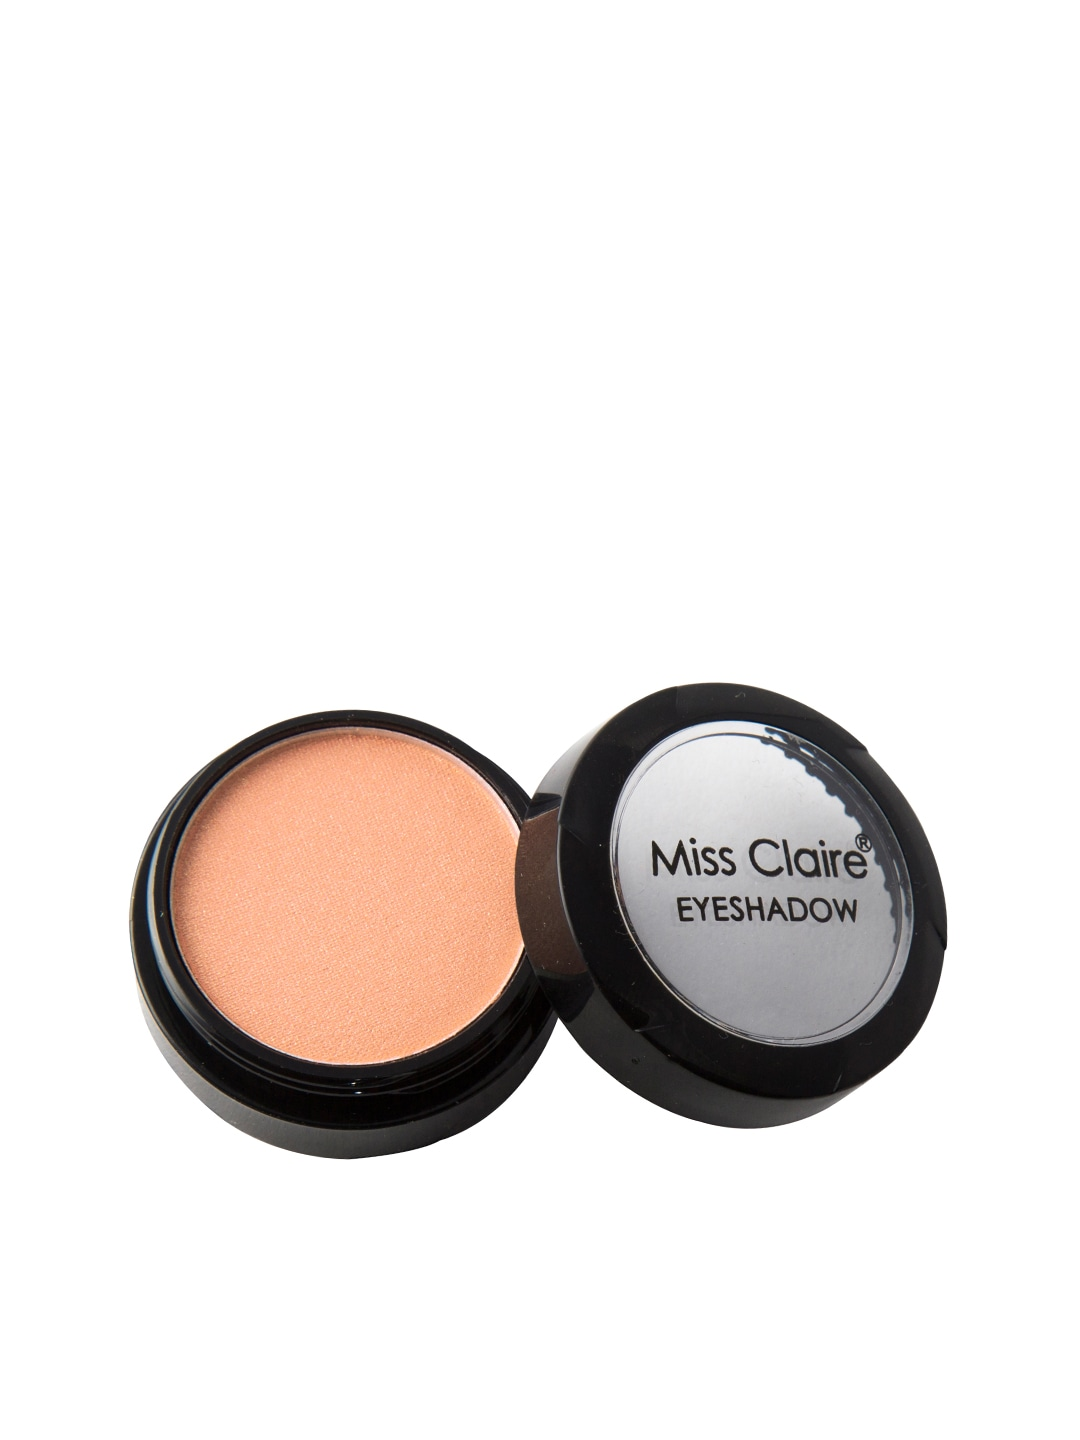 Miss Claire Eyeshadow